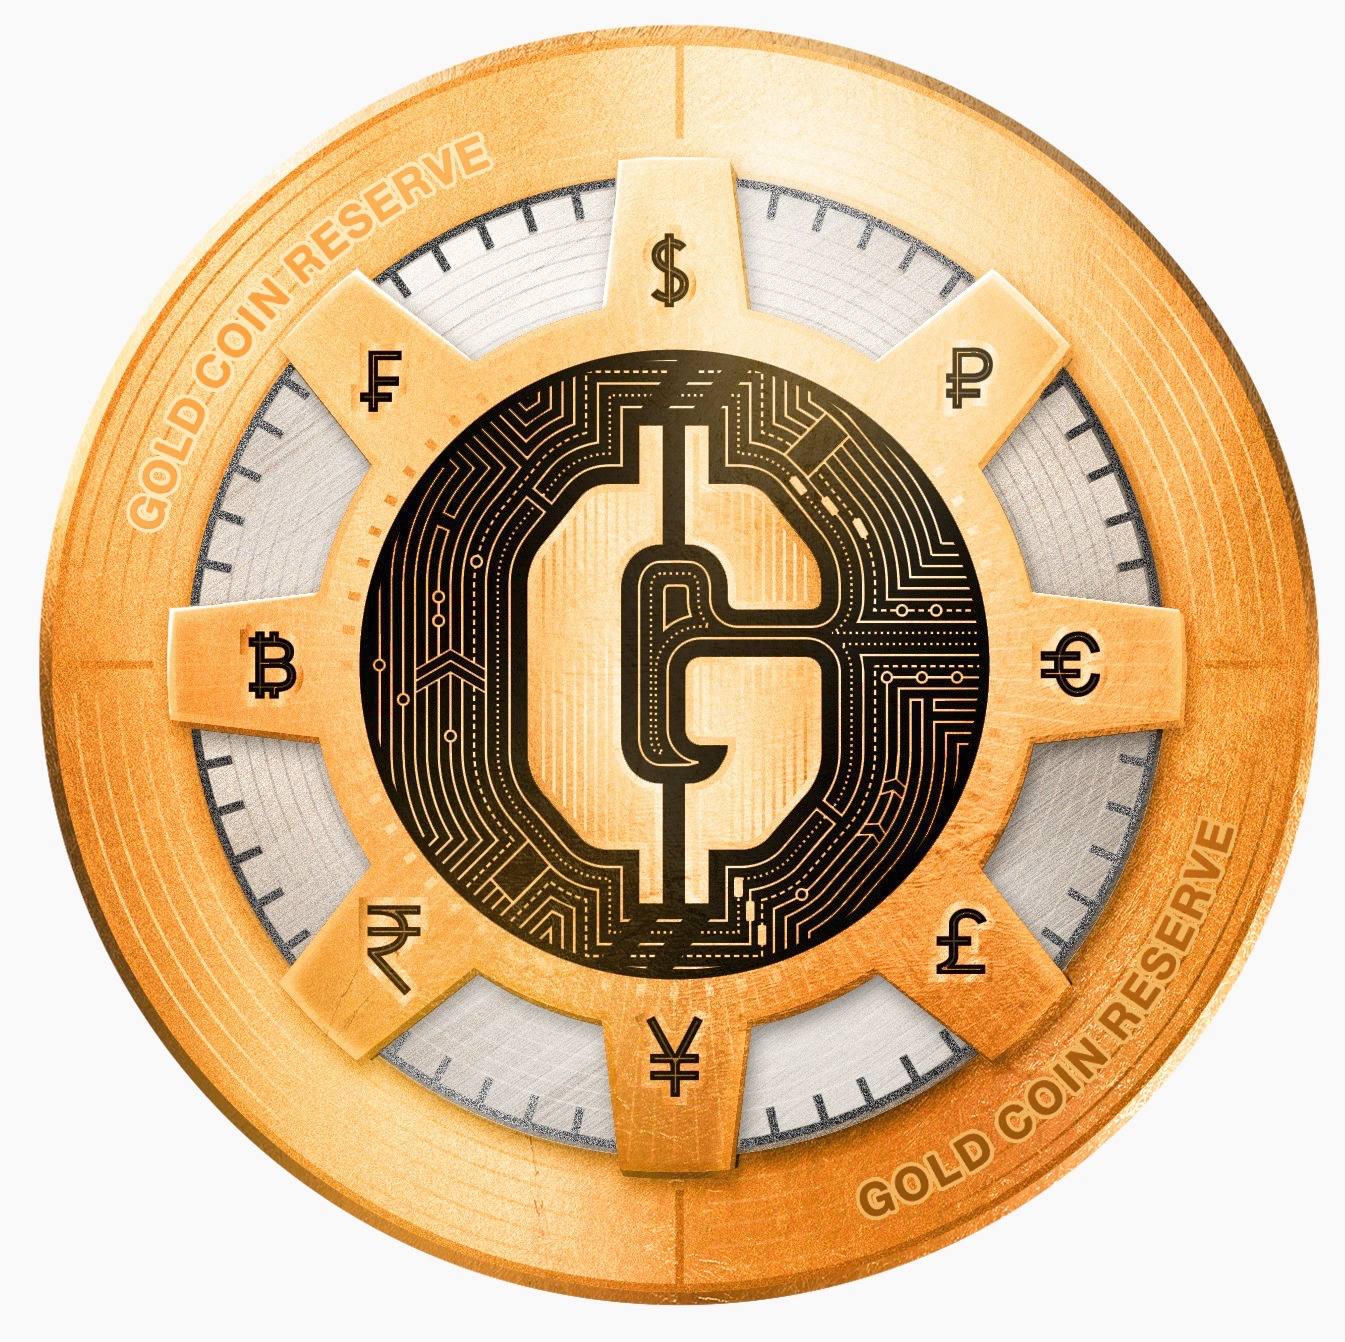 Gold Coin Reserve